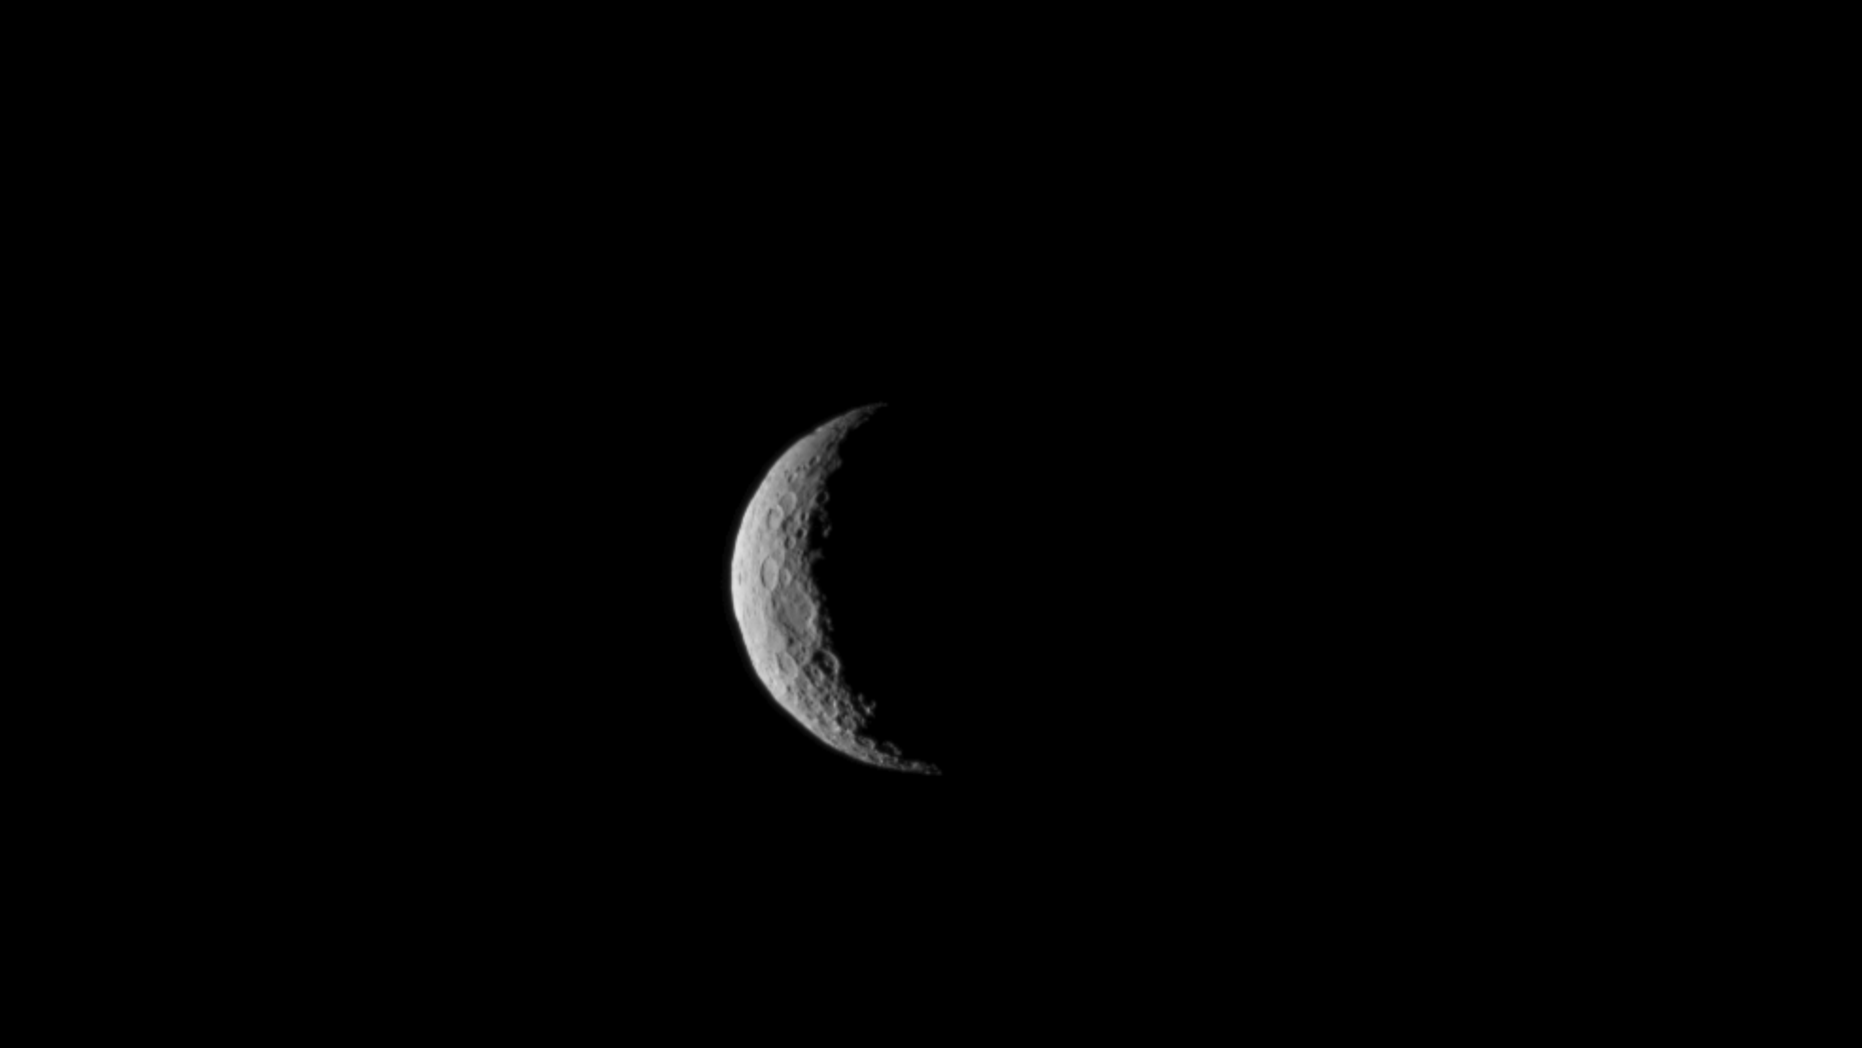 File photo: The dwarf planet Ceres, one of several known dwarf planets in our solar system, is seen from NASA's Dawn spacecraft on March 1, 2015, just a few days before the mission achieved orbit around the previously unexplored dwarf planet.